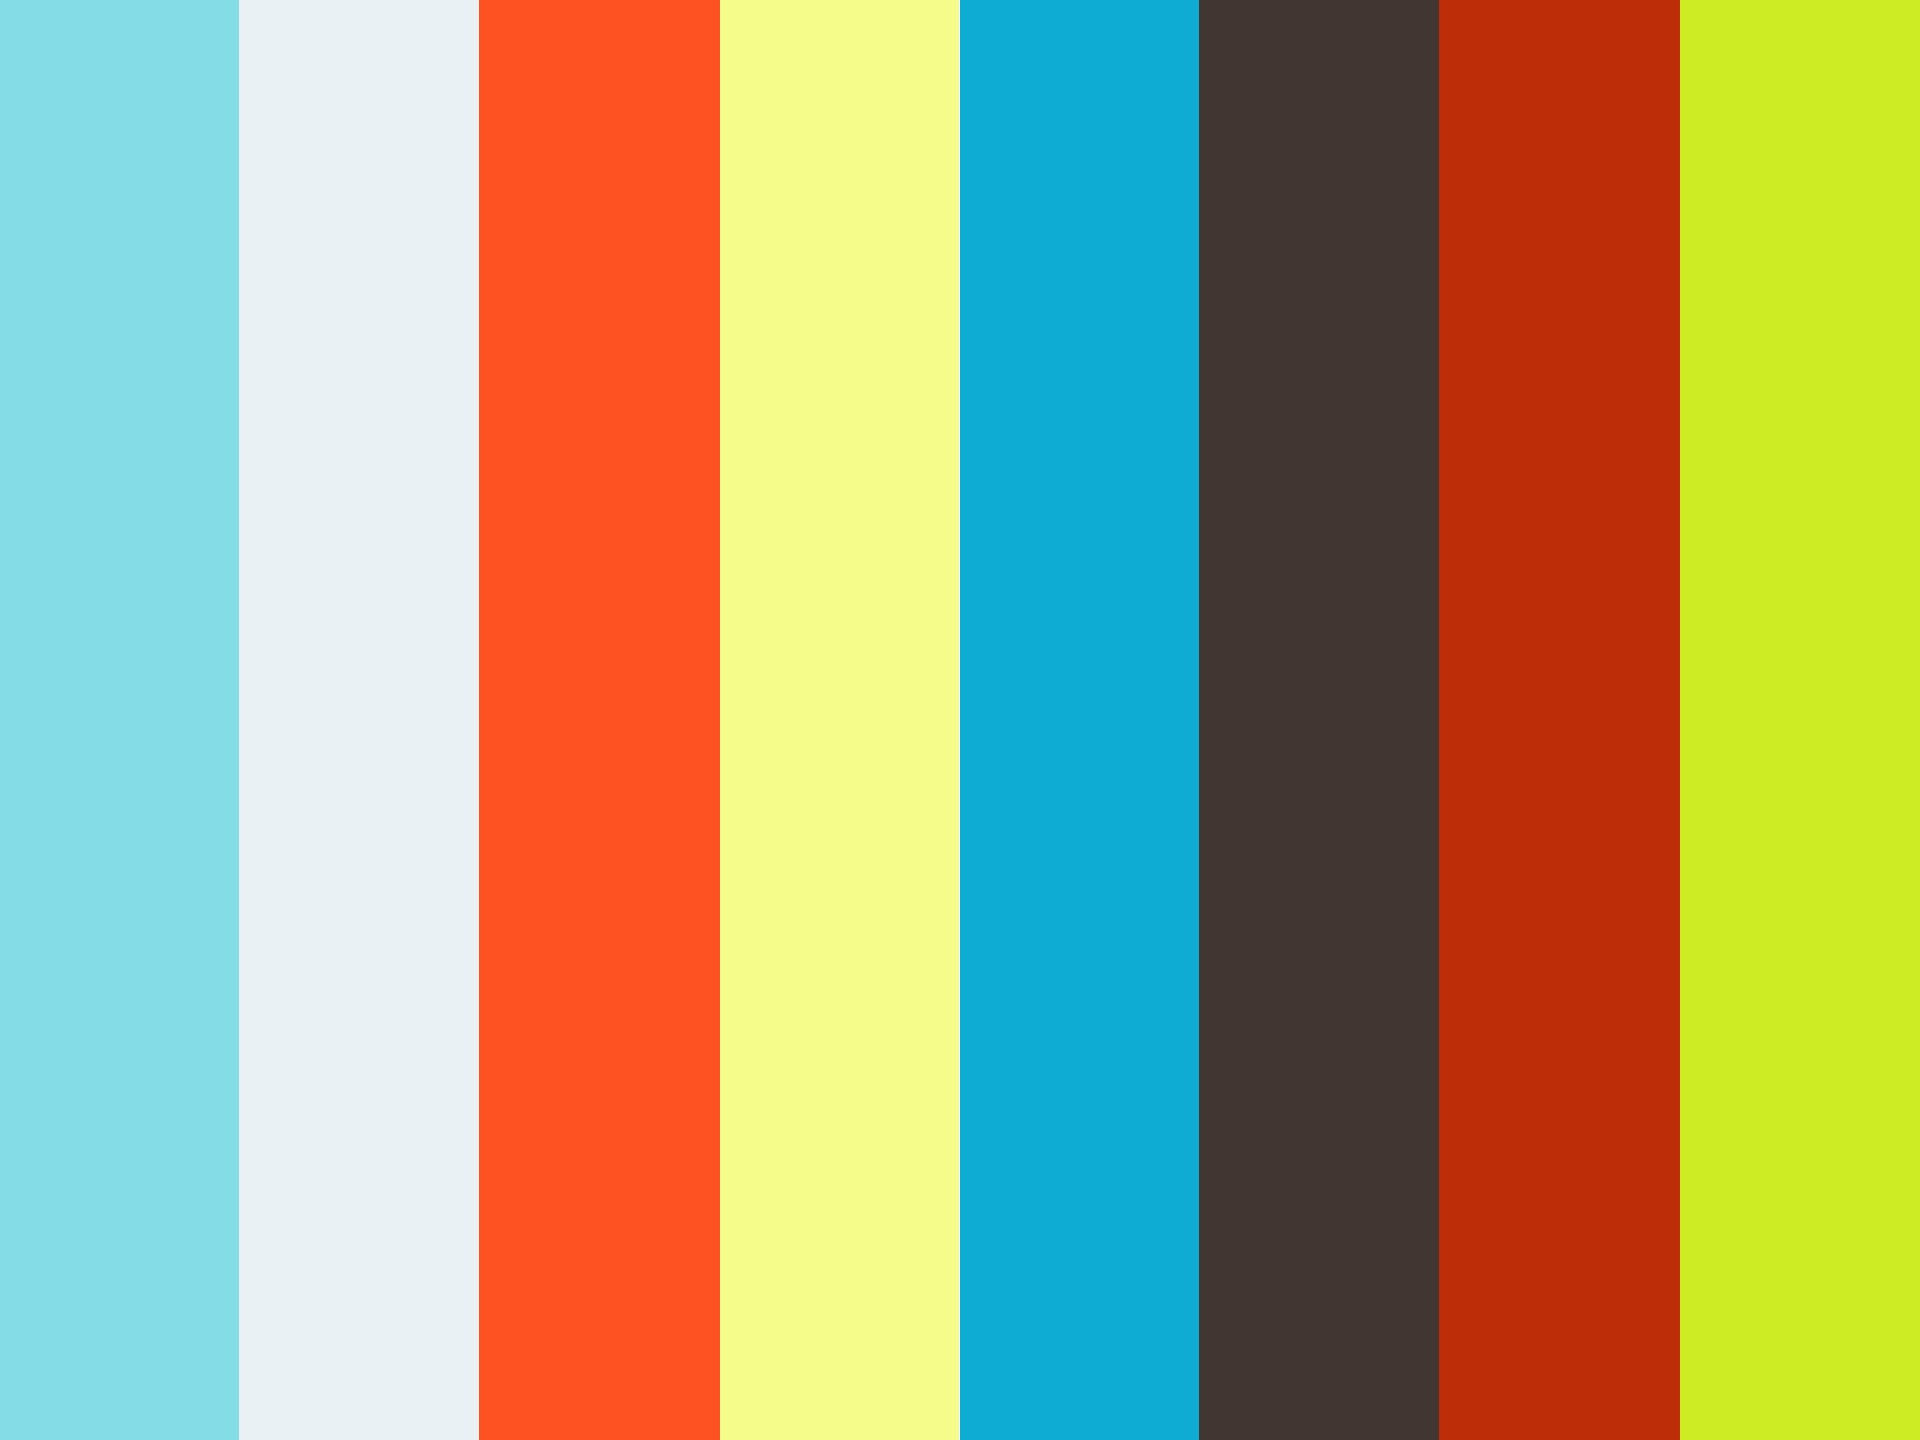 Making the Pouch Reach: Laparoscopic Pouch Lengthening Maneuvers 2010